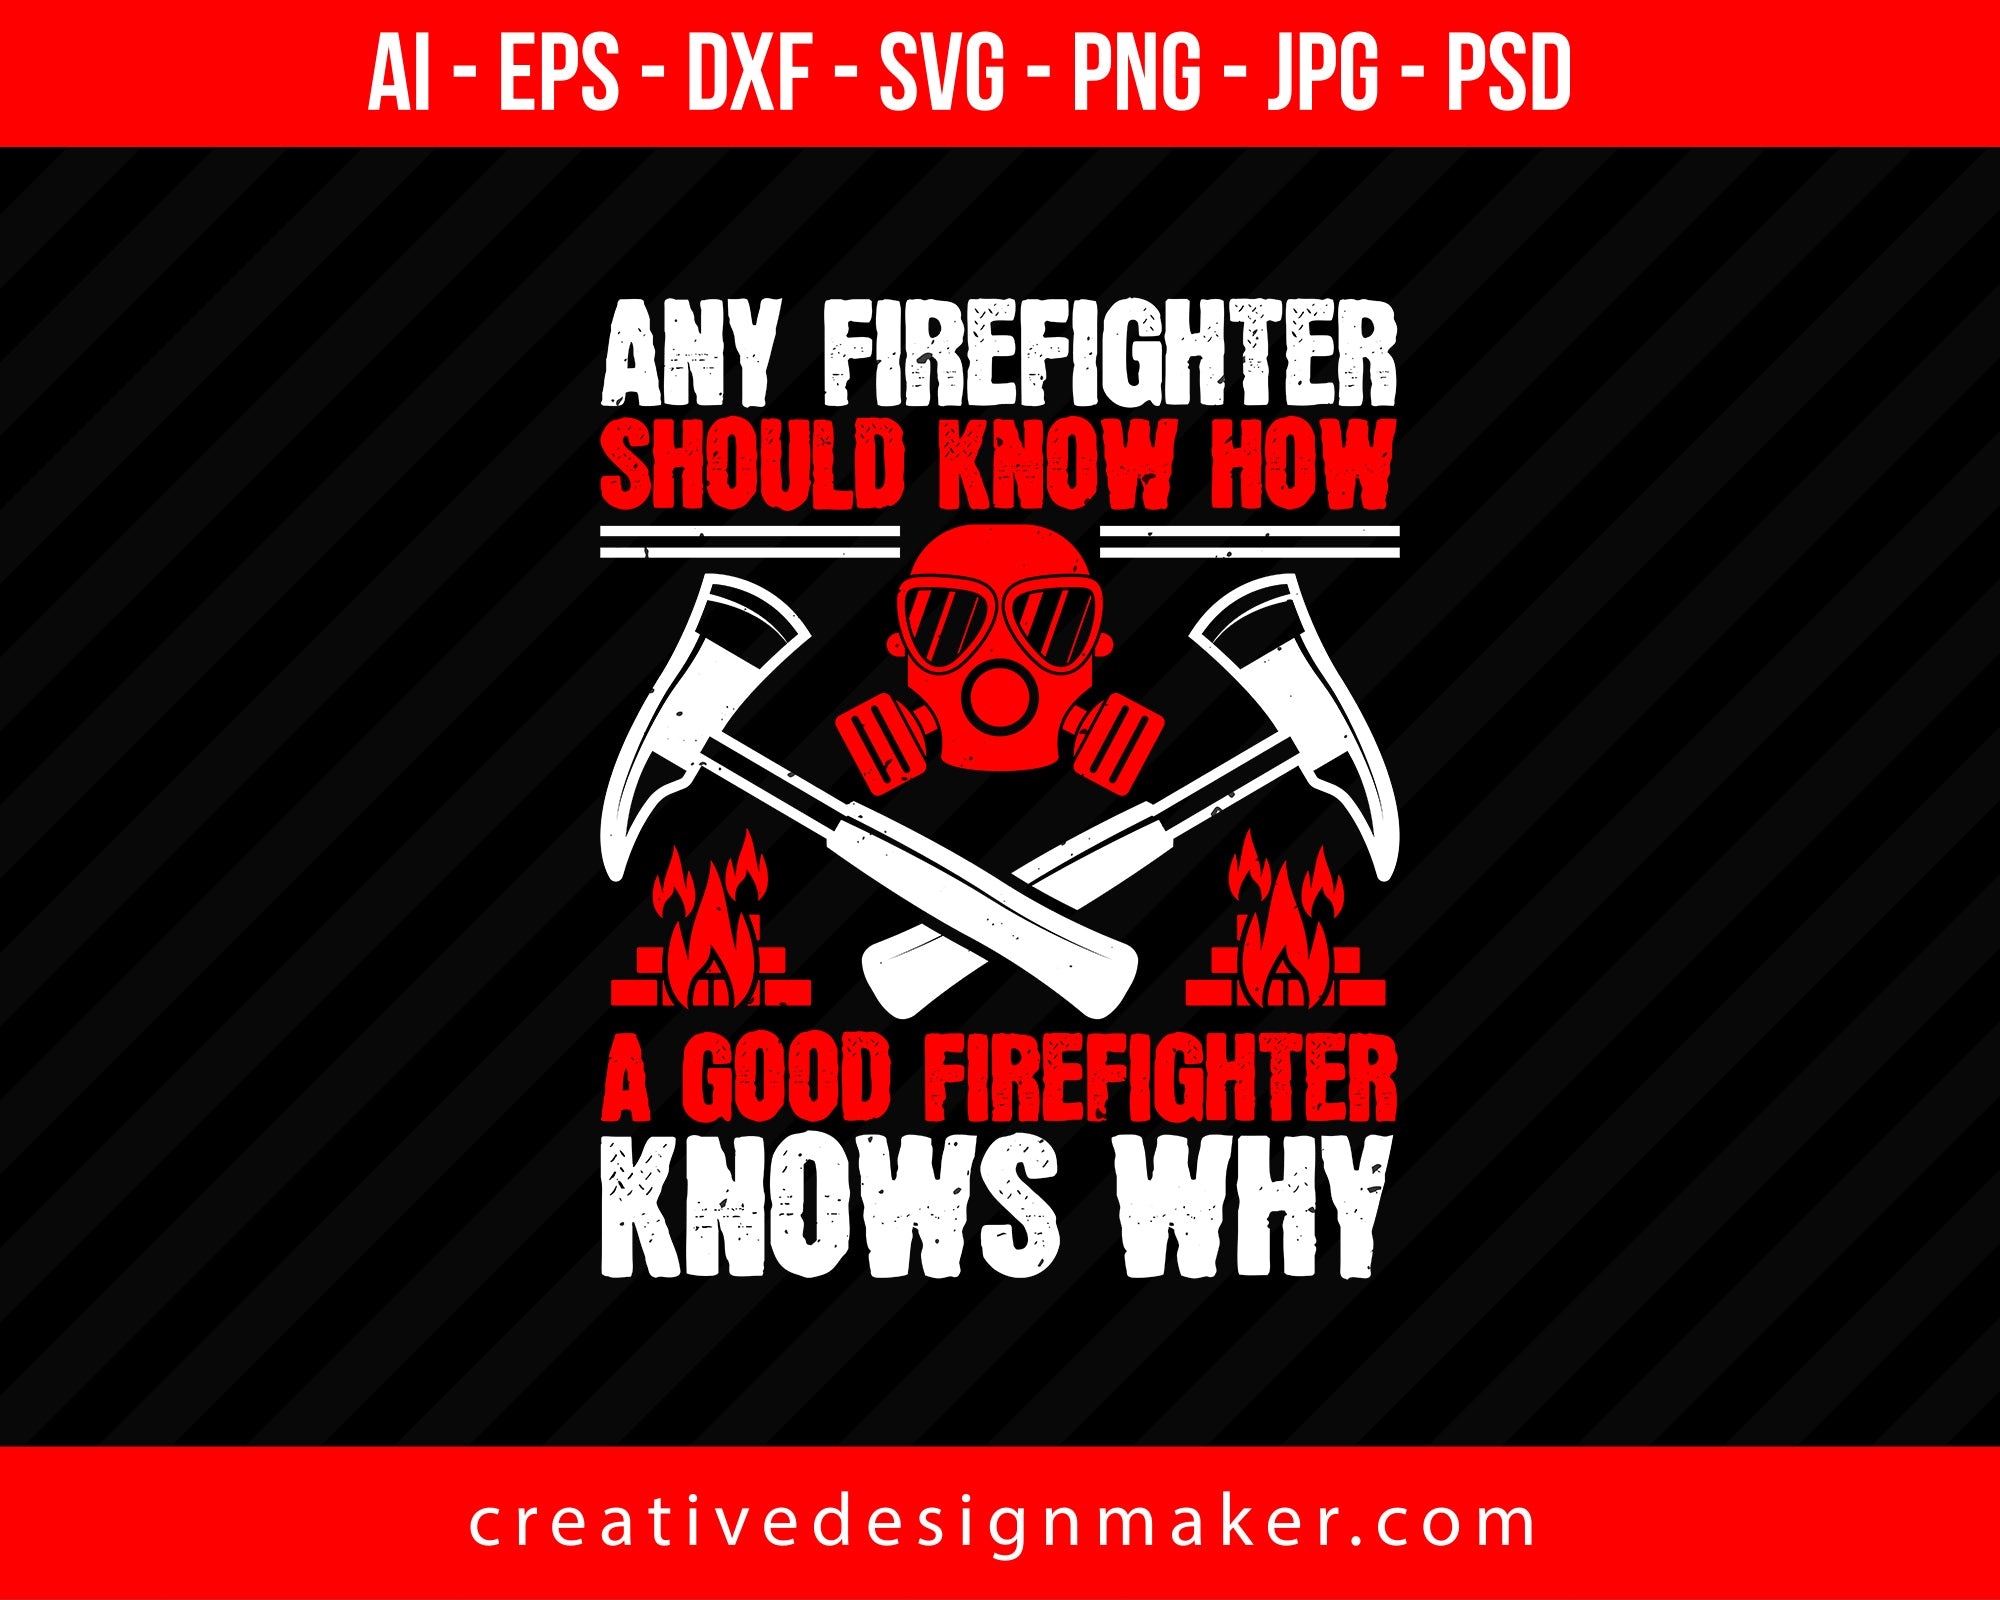 Any Firefighter Should Know How, A Good Firefighter Knows Why Print Ready Editable T-Shirt SVG Design!